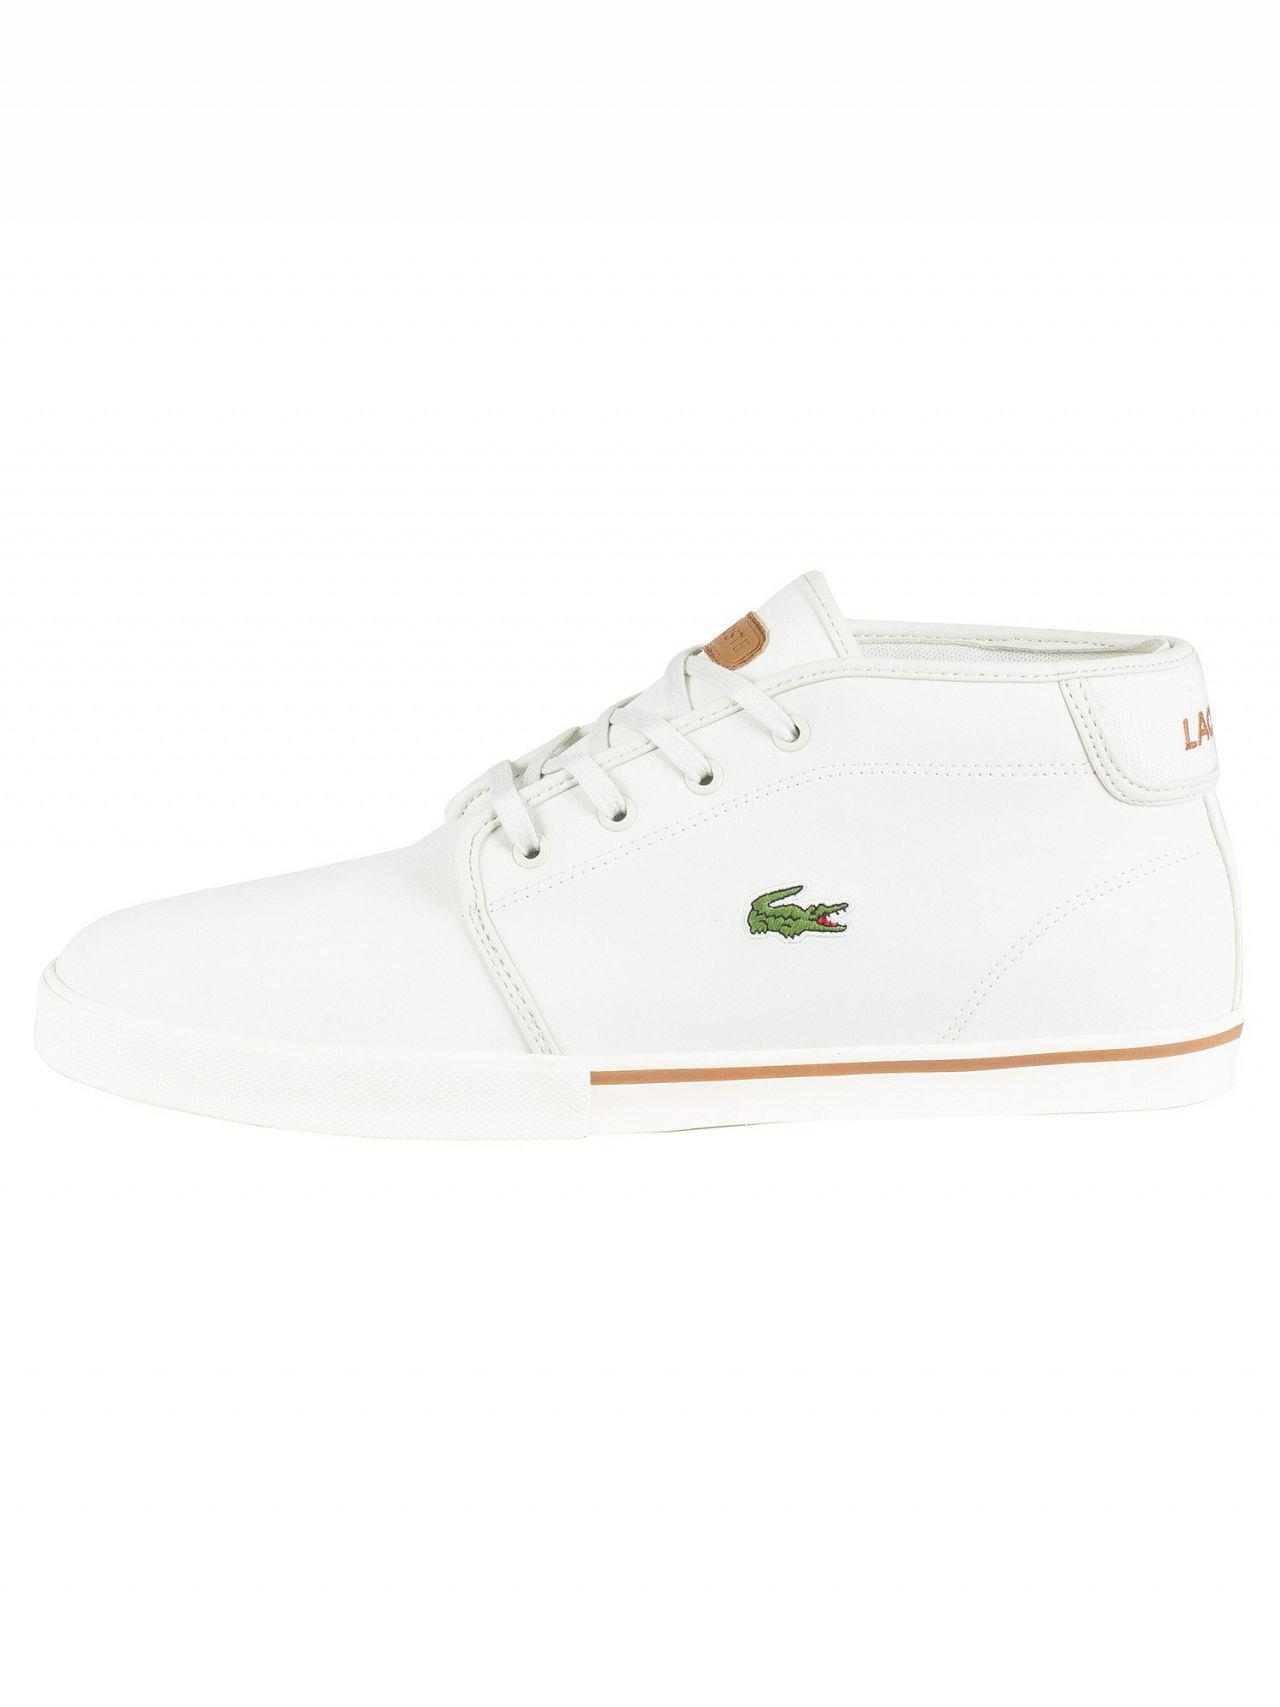 498883b6af0166 Lyst - Lacoste Off White light Brown Ampthill 119 1 Leather Trainers in  White for Men